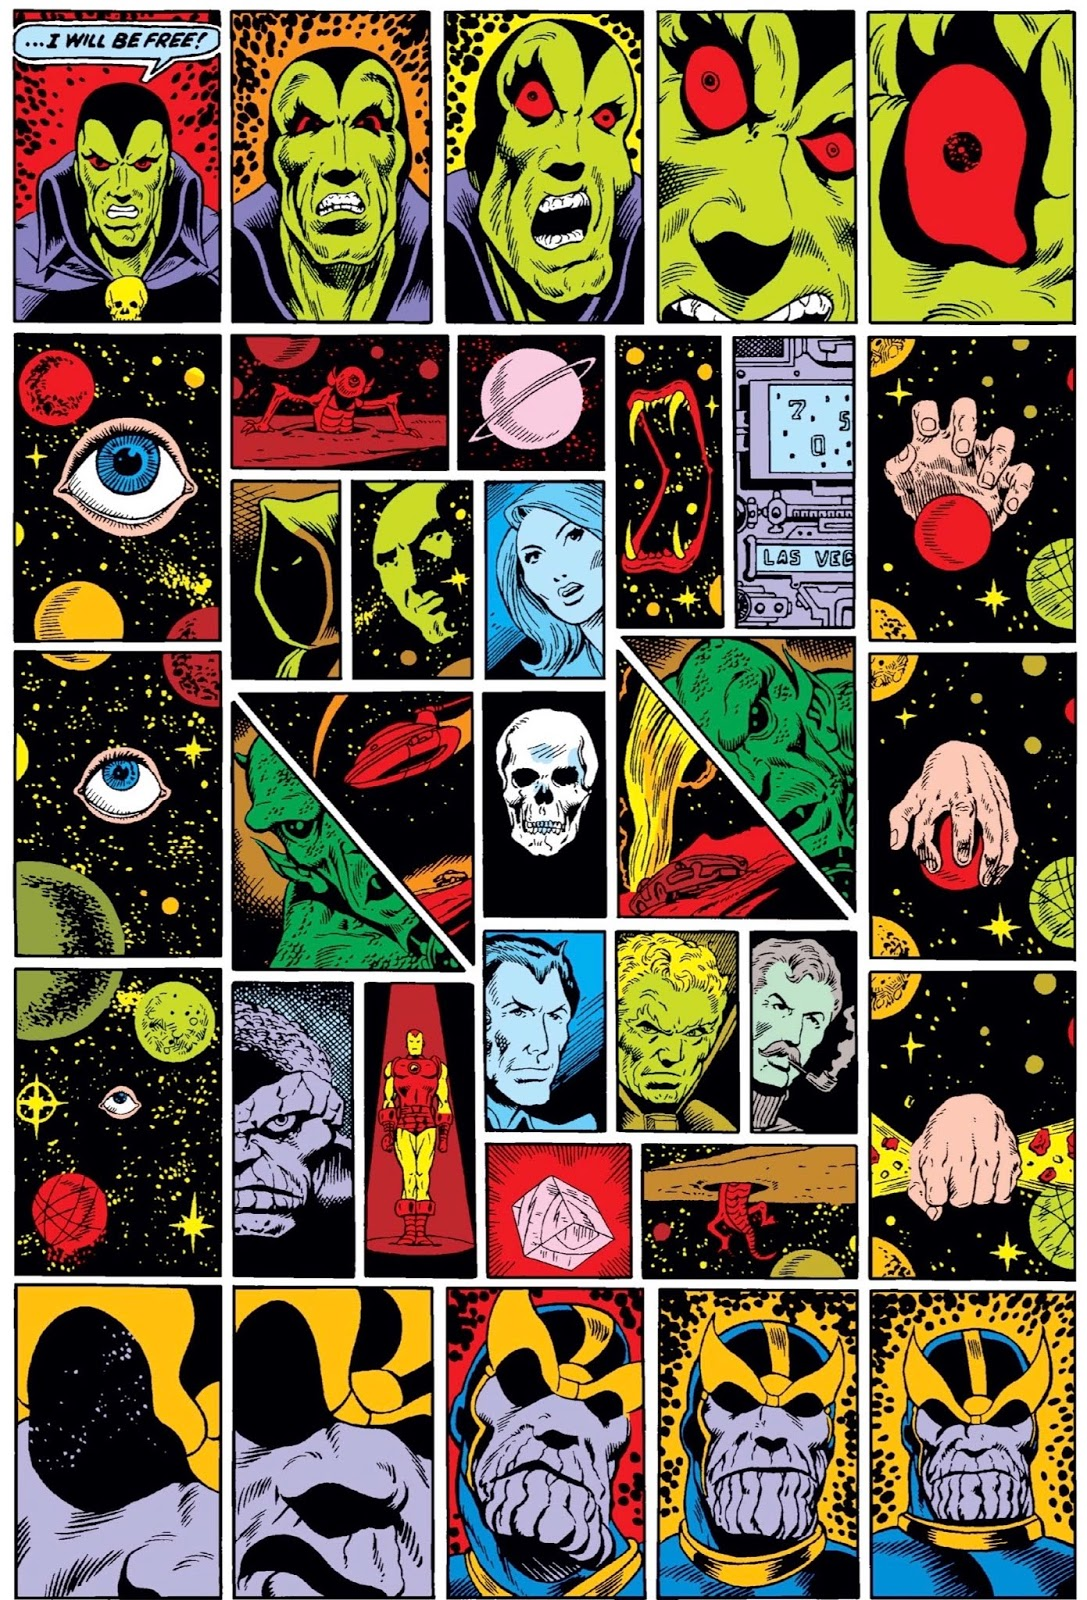 Full page of small panels, Drax's face growing distorted on top tier and Thanos' face doing opposite on bottom, in-between full of bizarre objects like disembodied eye and fanged mouth in cosmic landscape